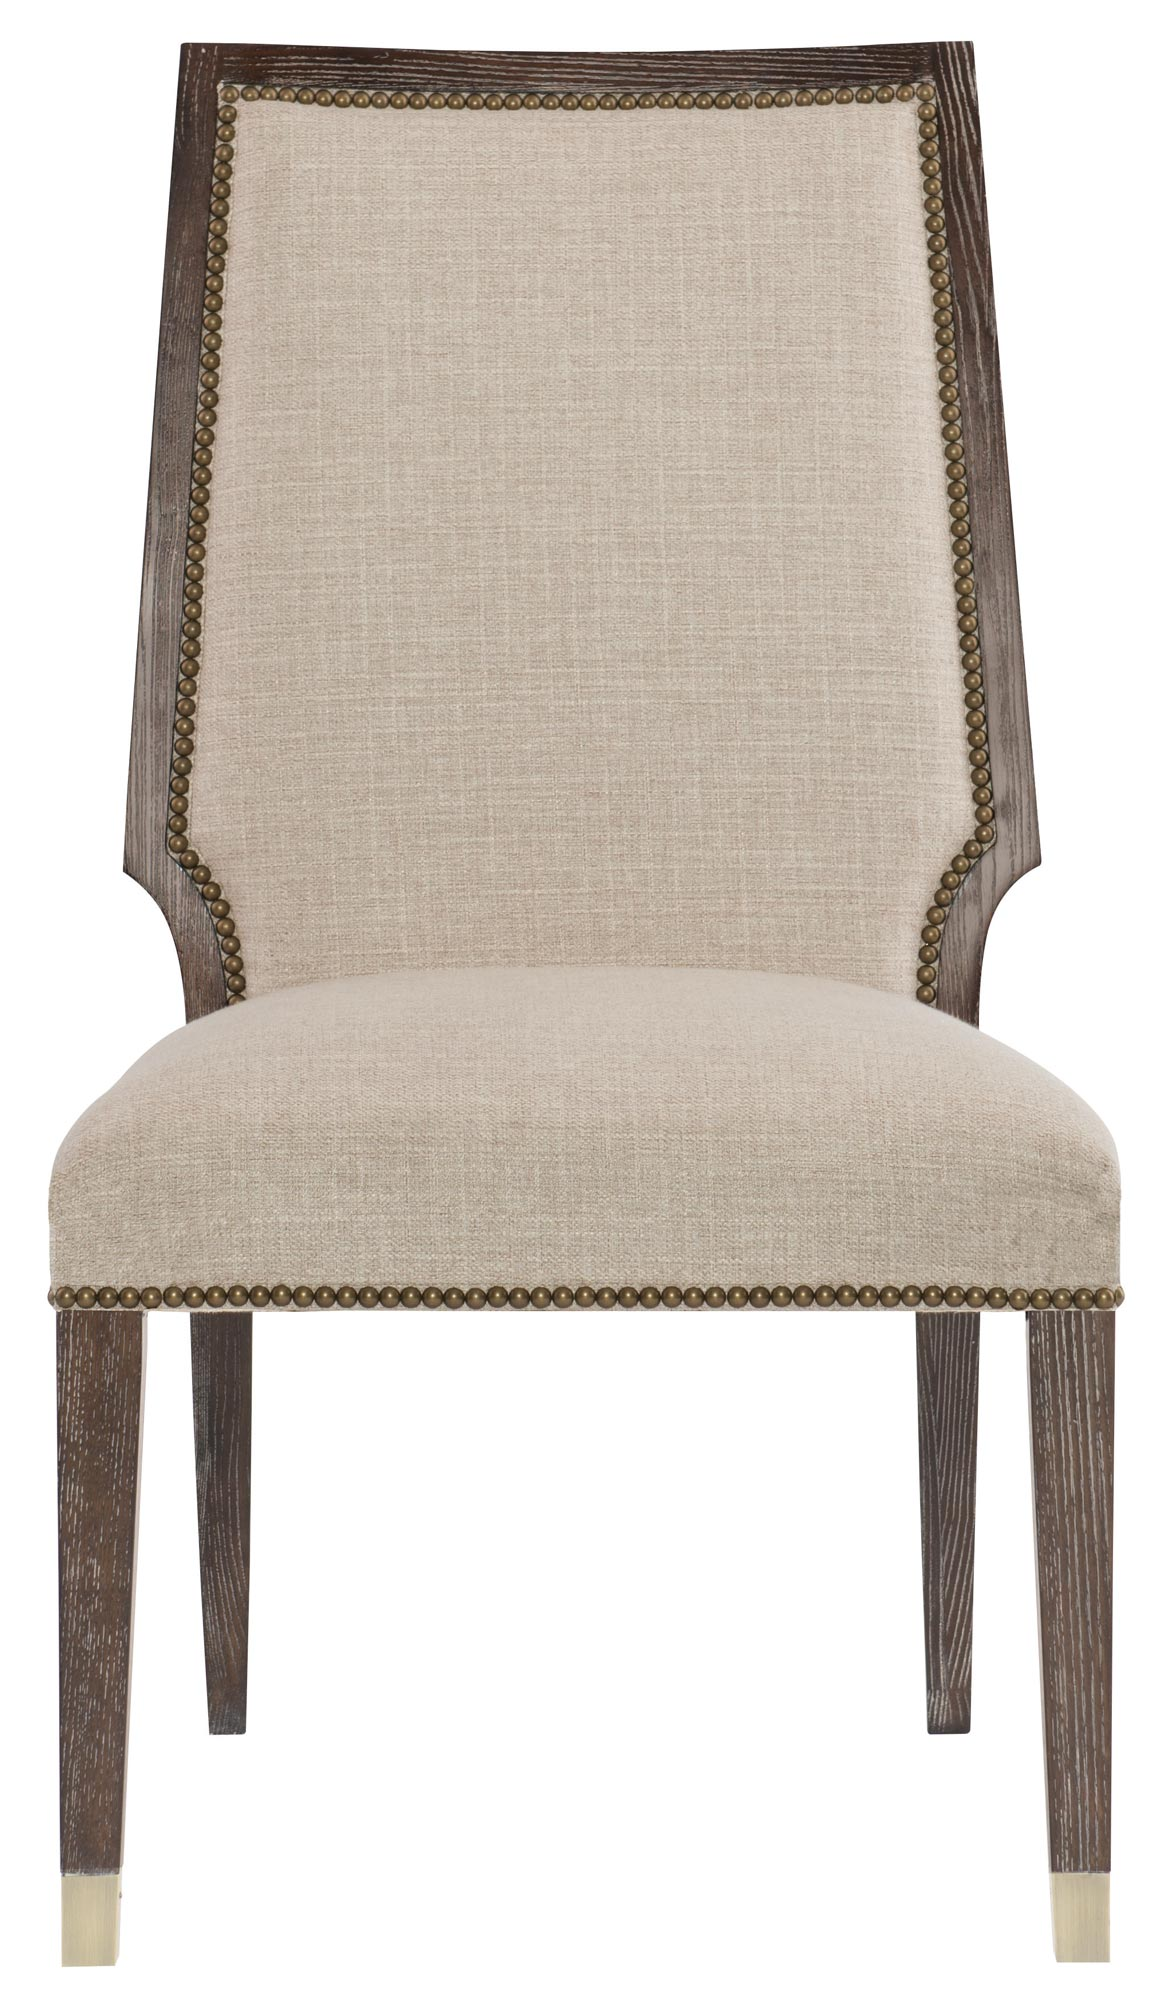 upholstered dining chairs canada nursery chair target side | bernhardt